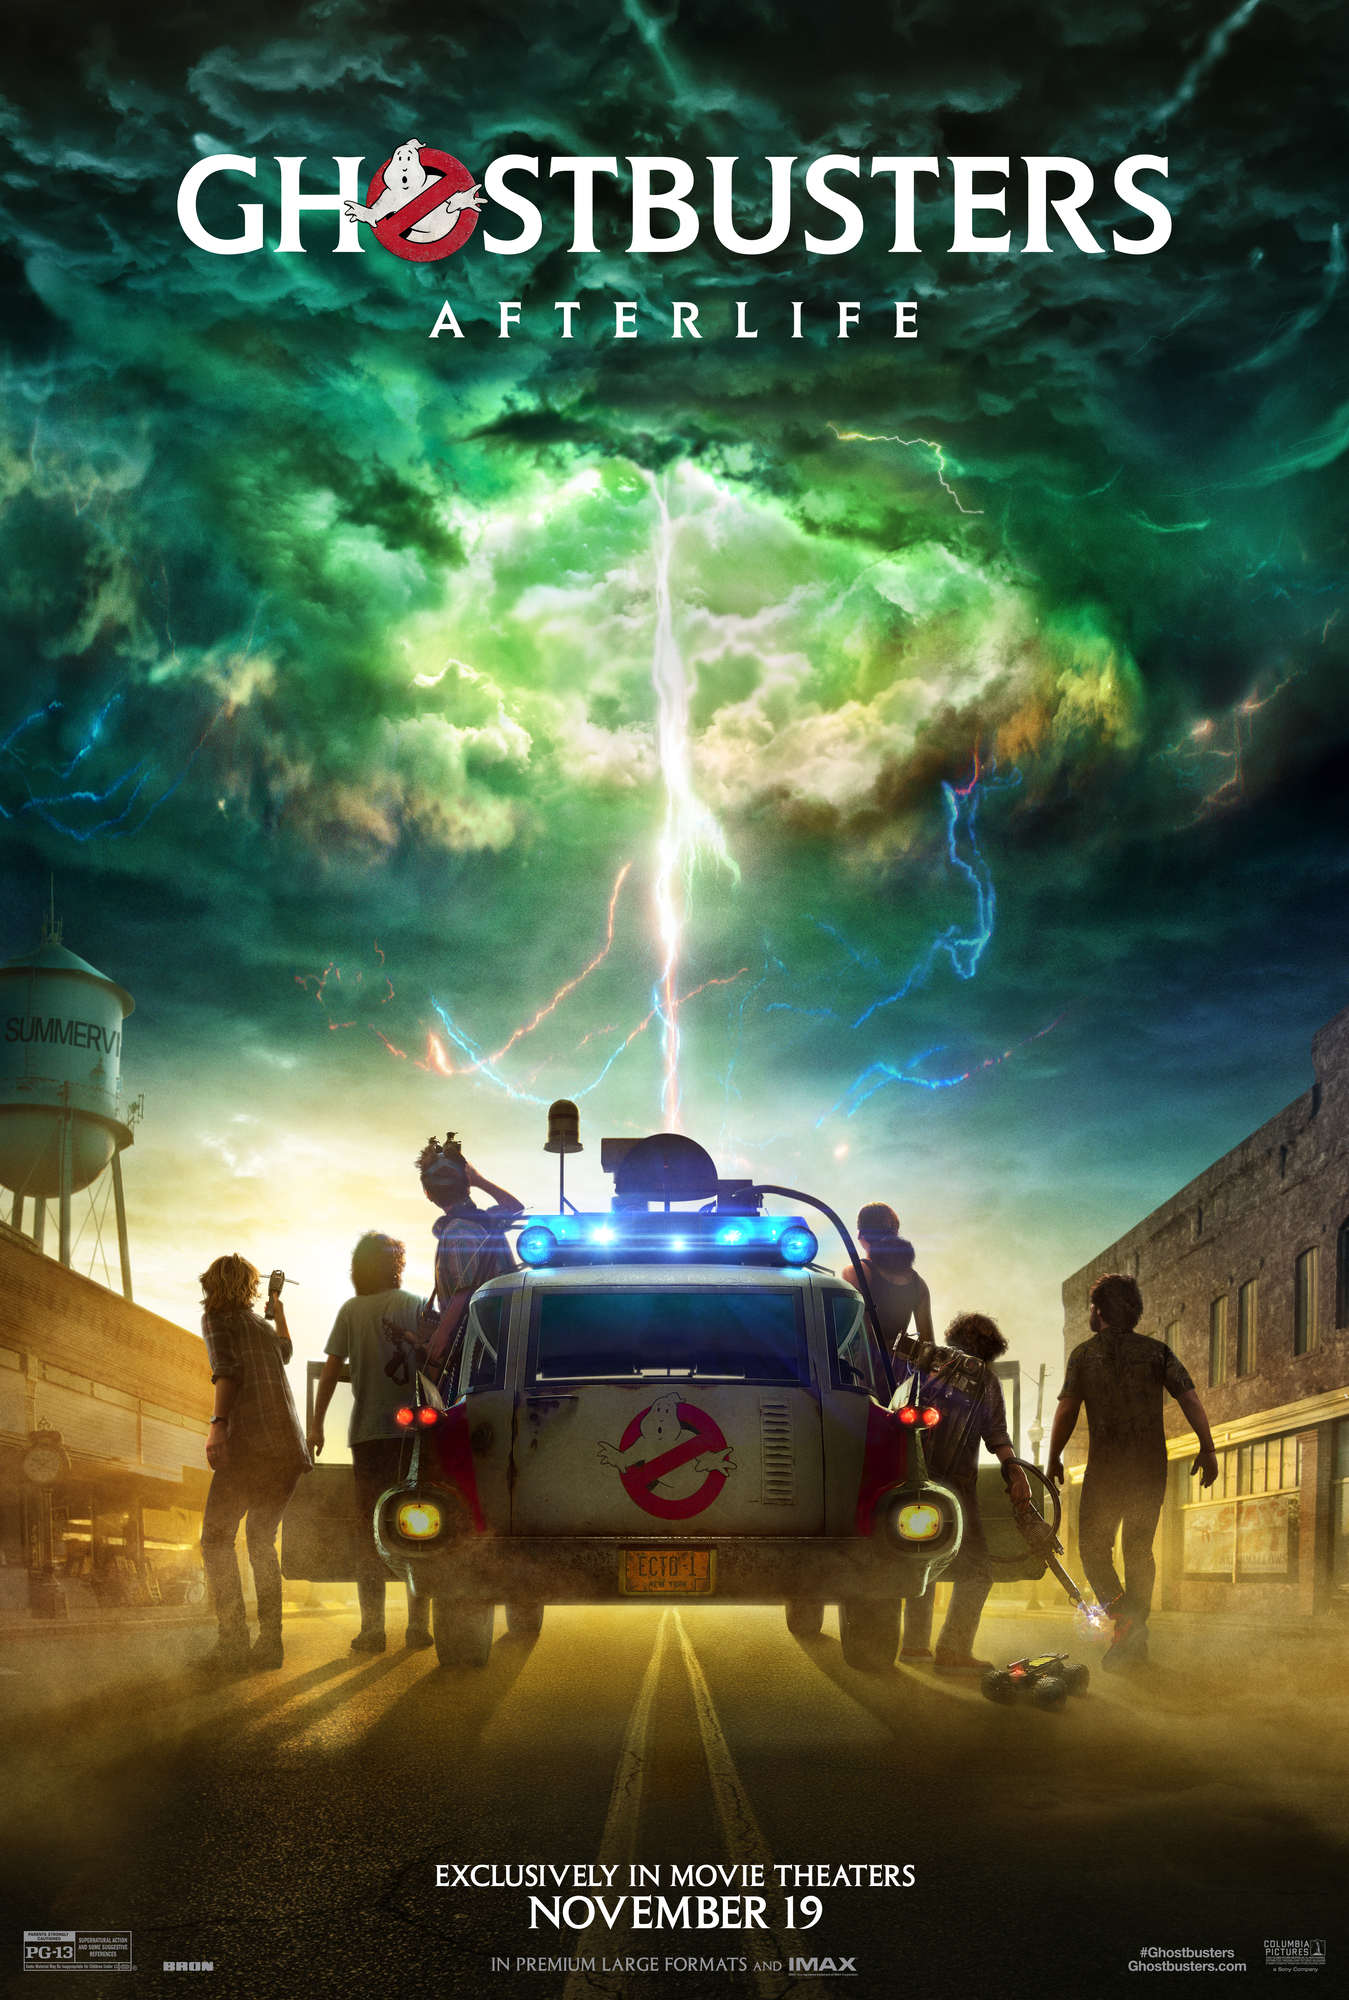 New Ghostbusters: Afterlife poster